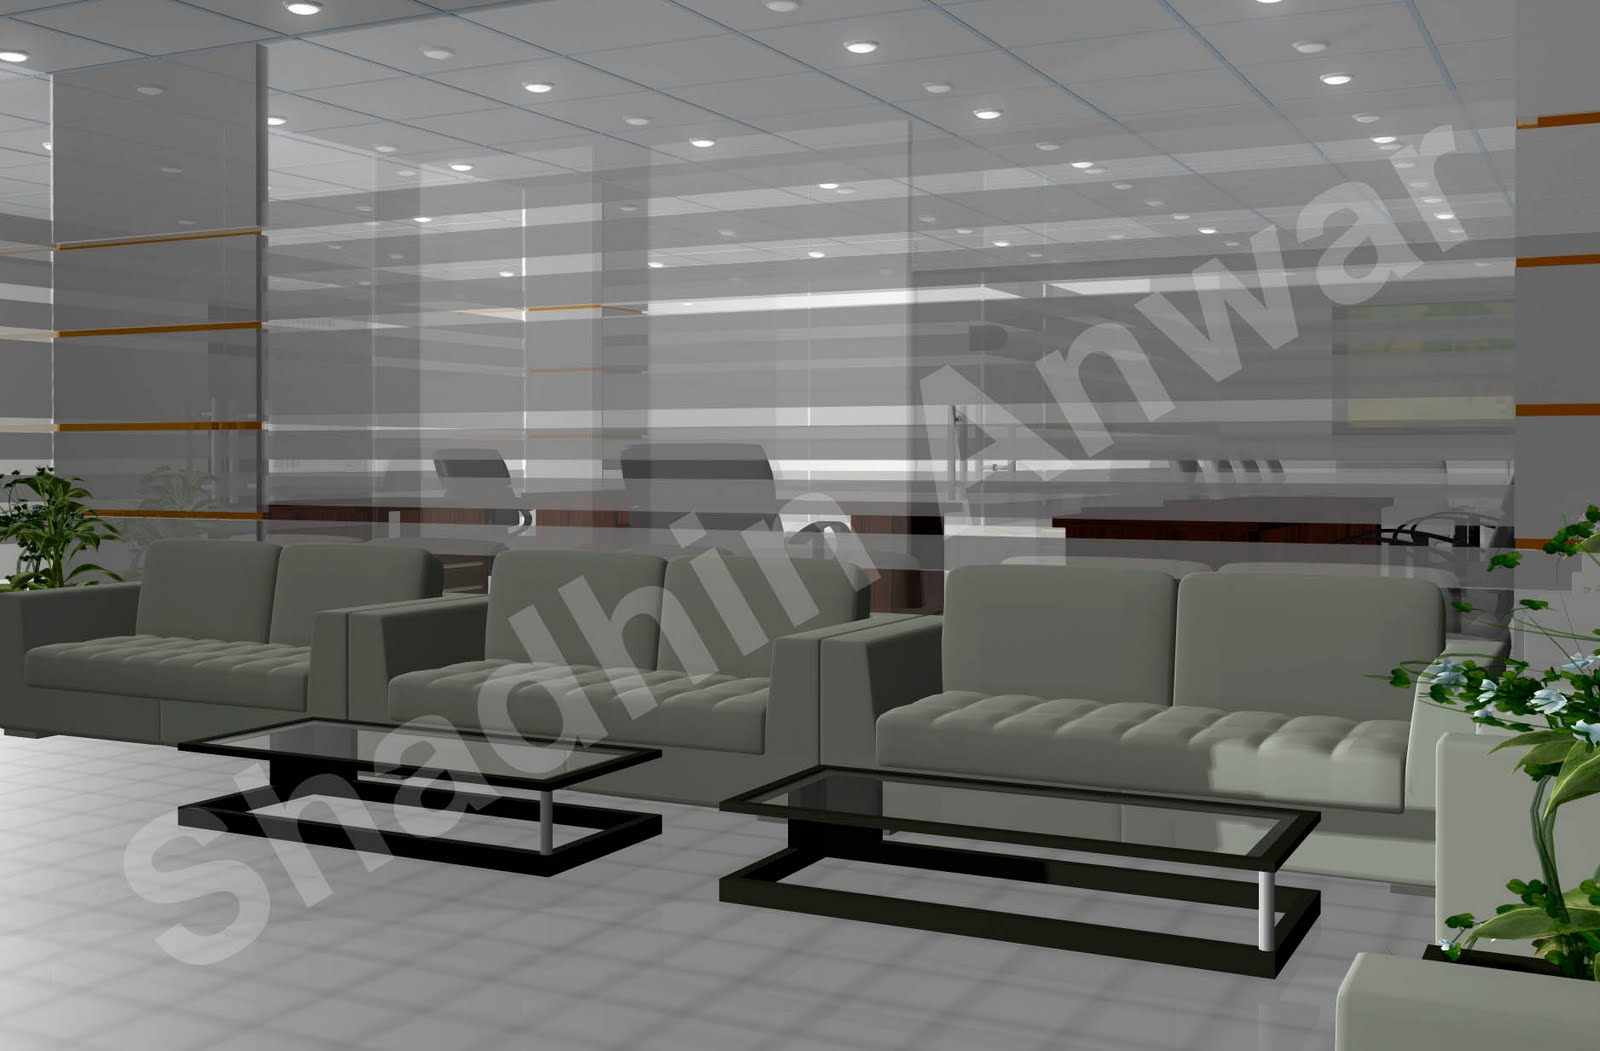 Shadhin 39 s personal blog 3d views of office interior design for Personal office interior design